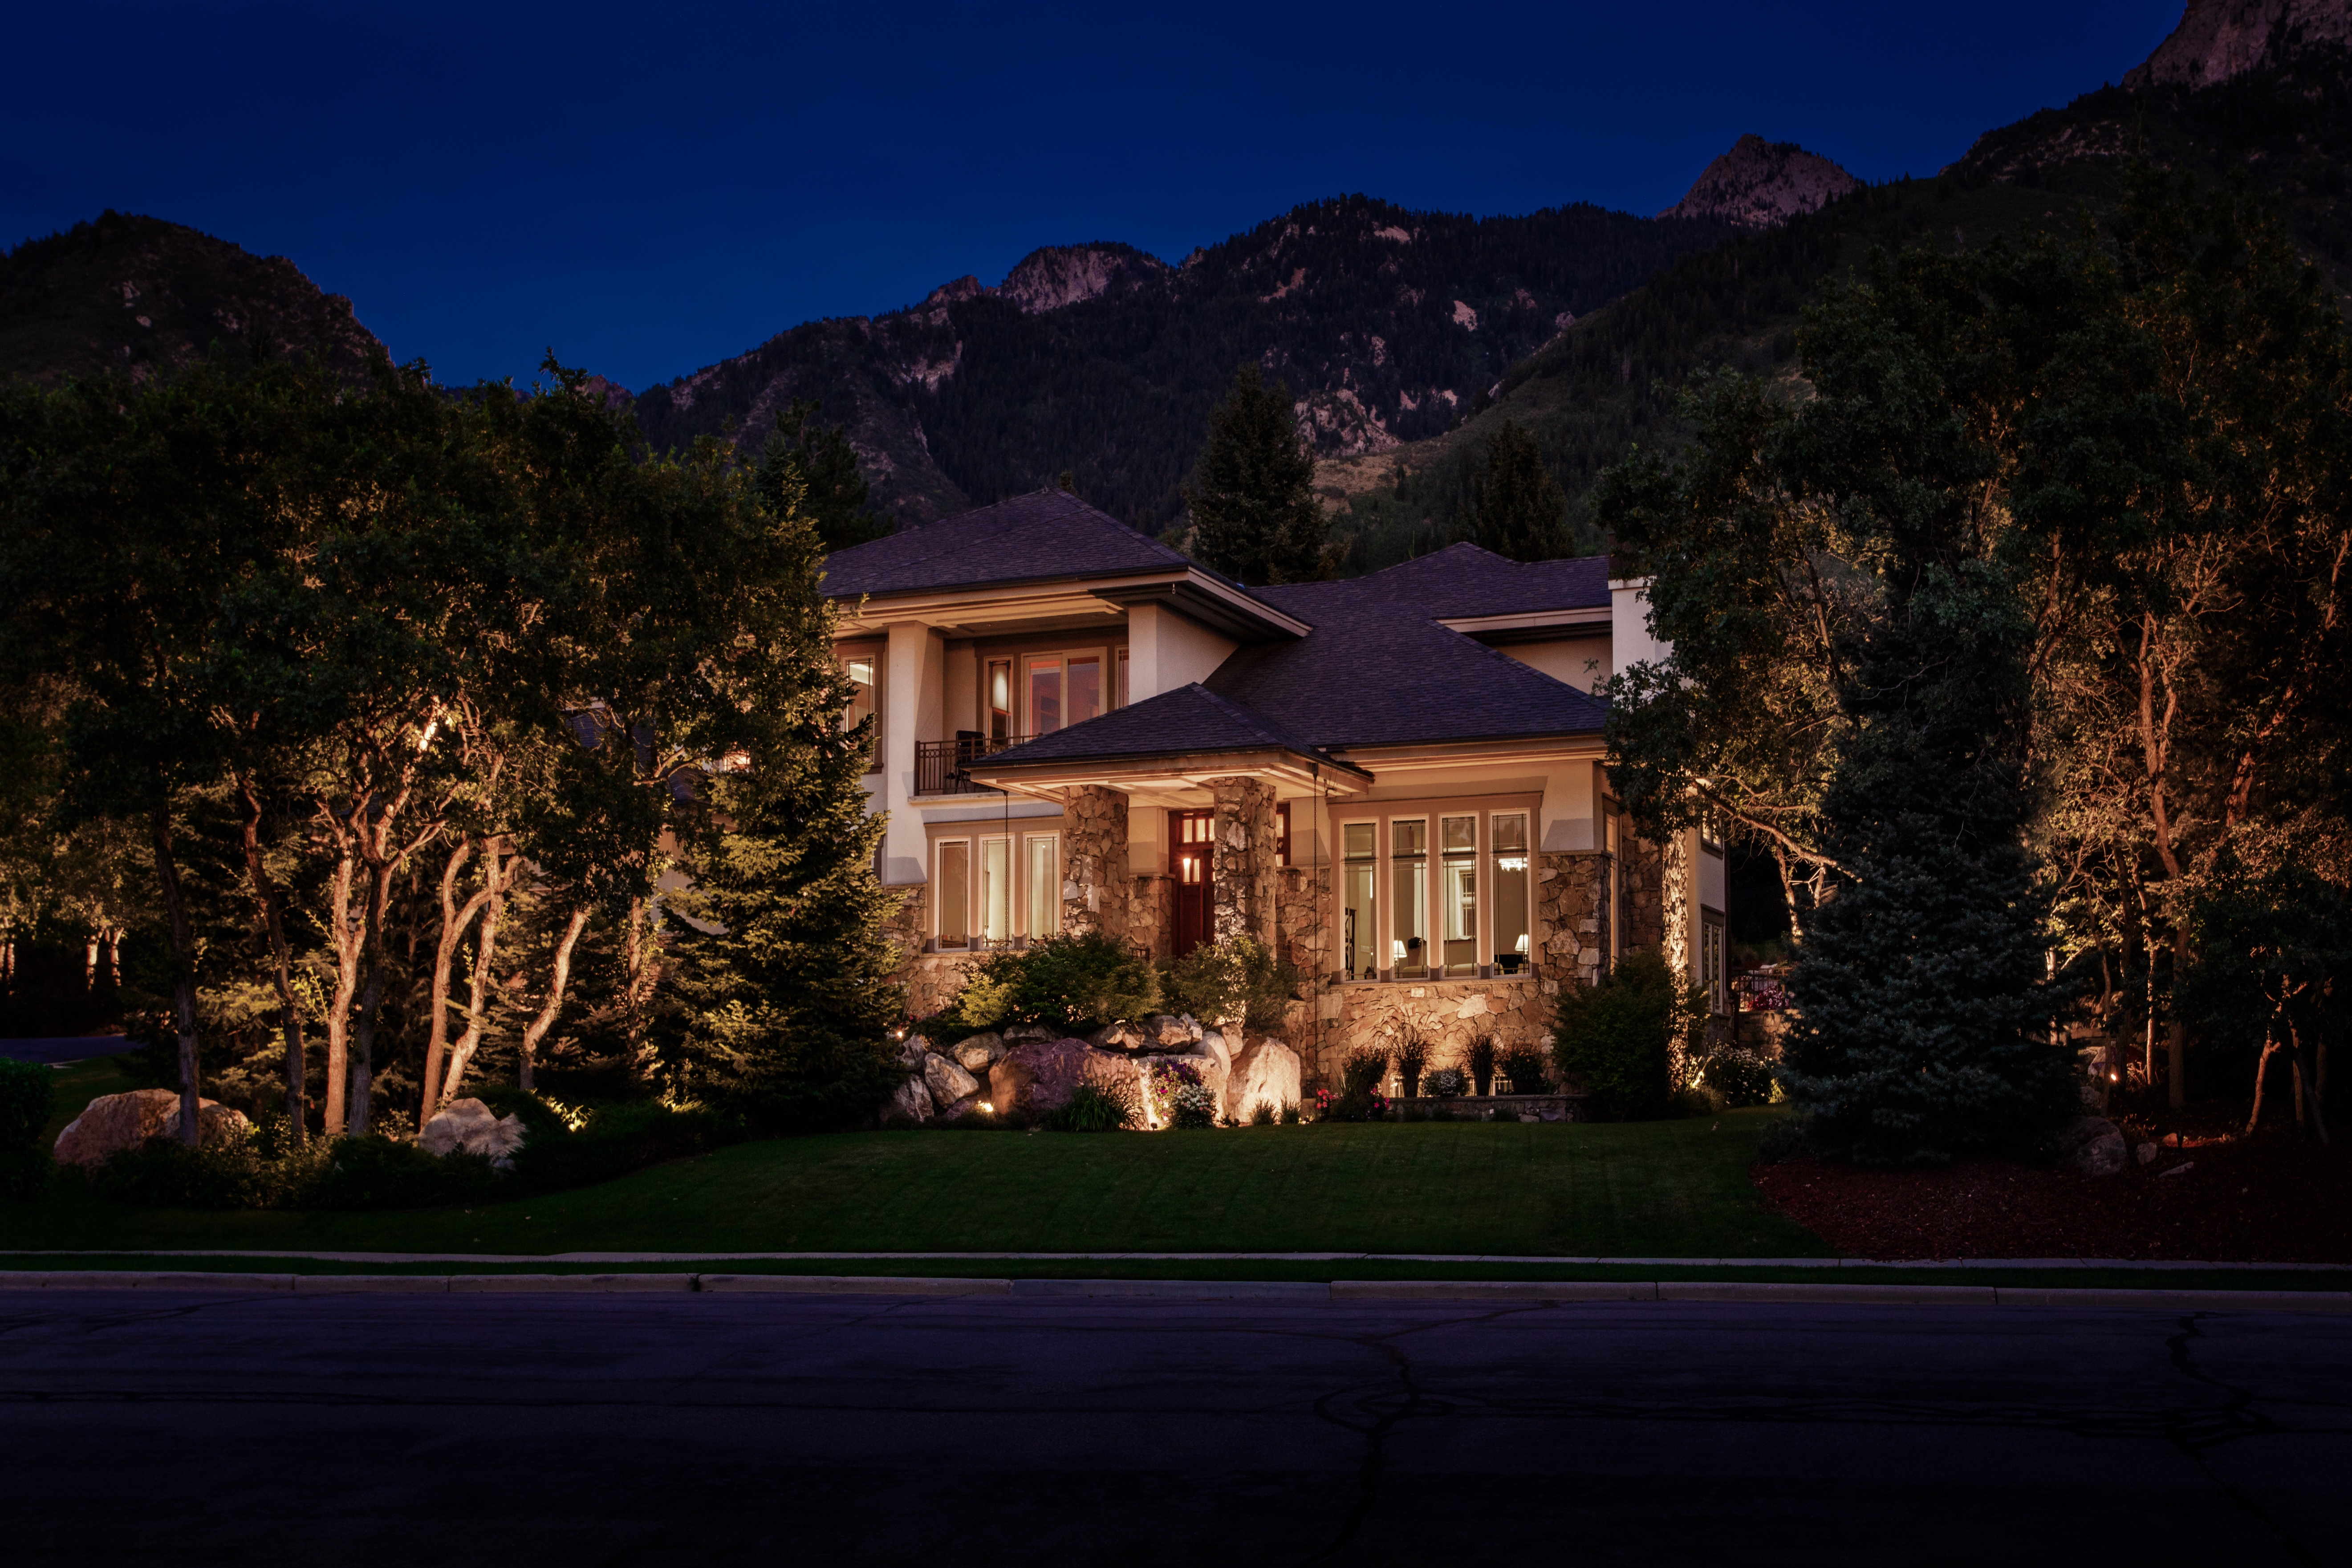 Myths Wiring Low Voltage Landscape Transformers Led Lighting Systems Lightings 6 Motion Sensor Lights Home Design Inspiration Slc Olympus Cove Security